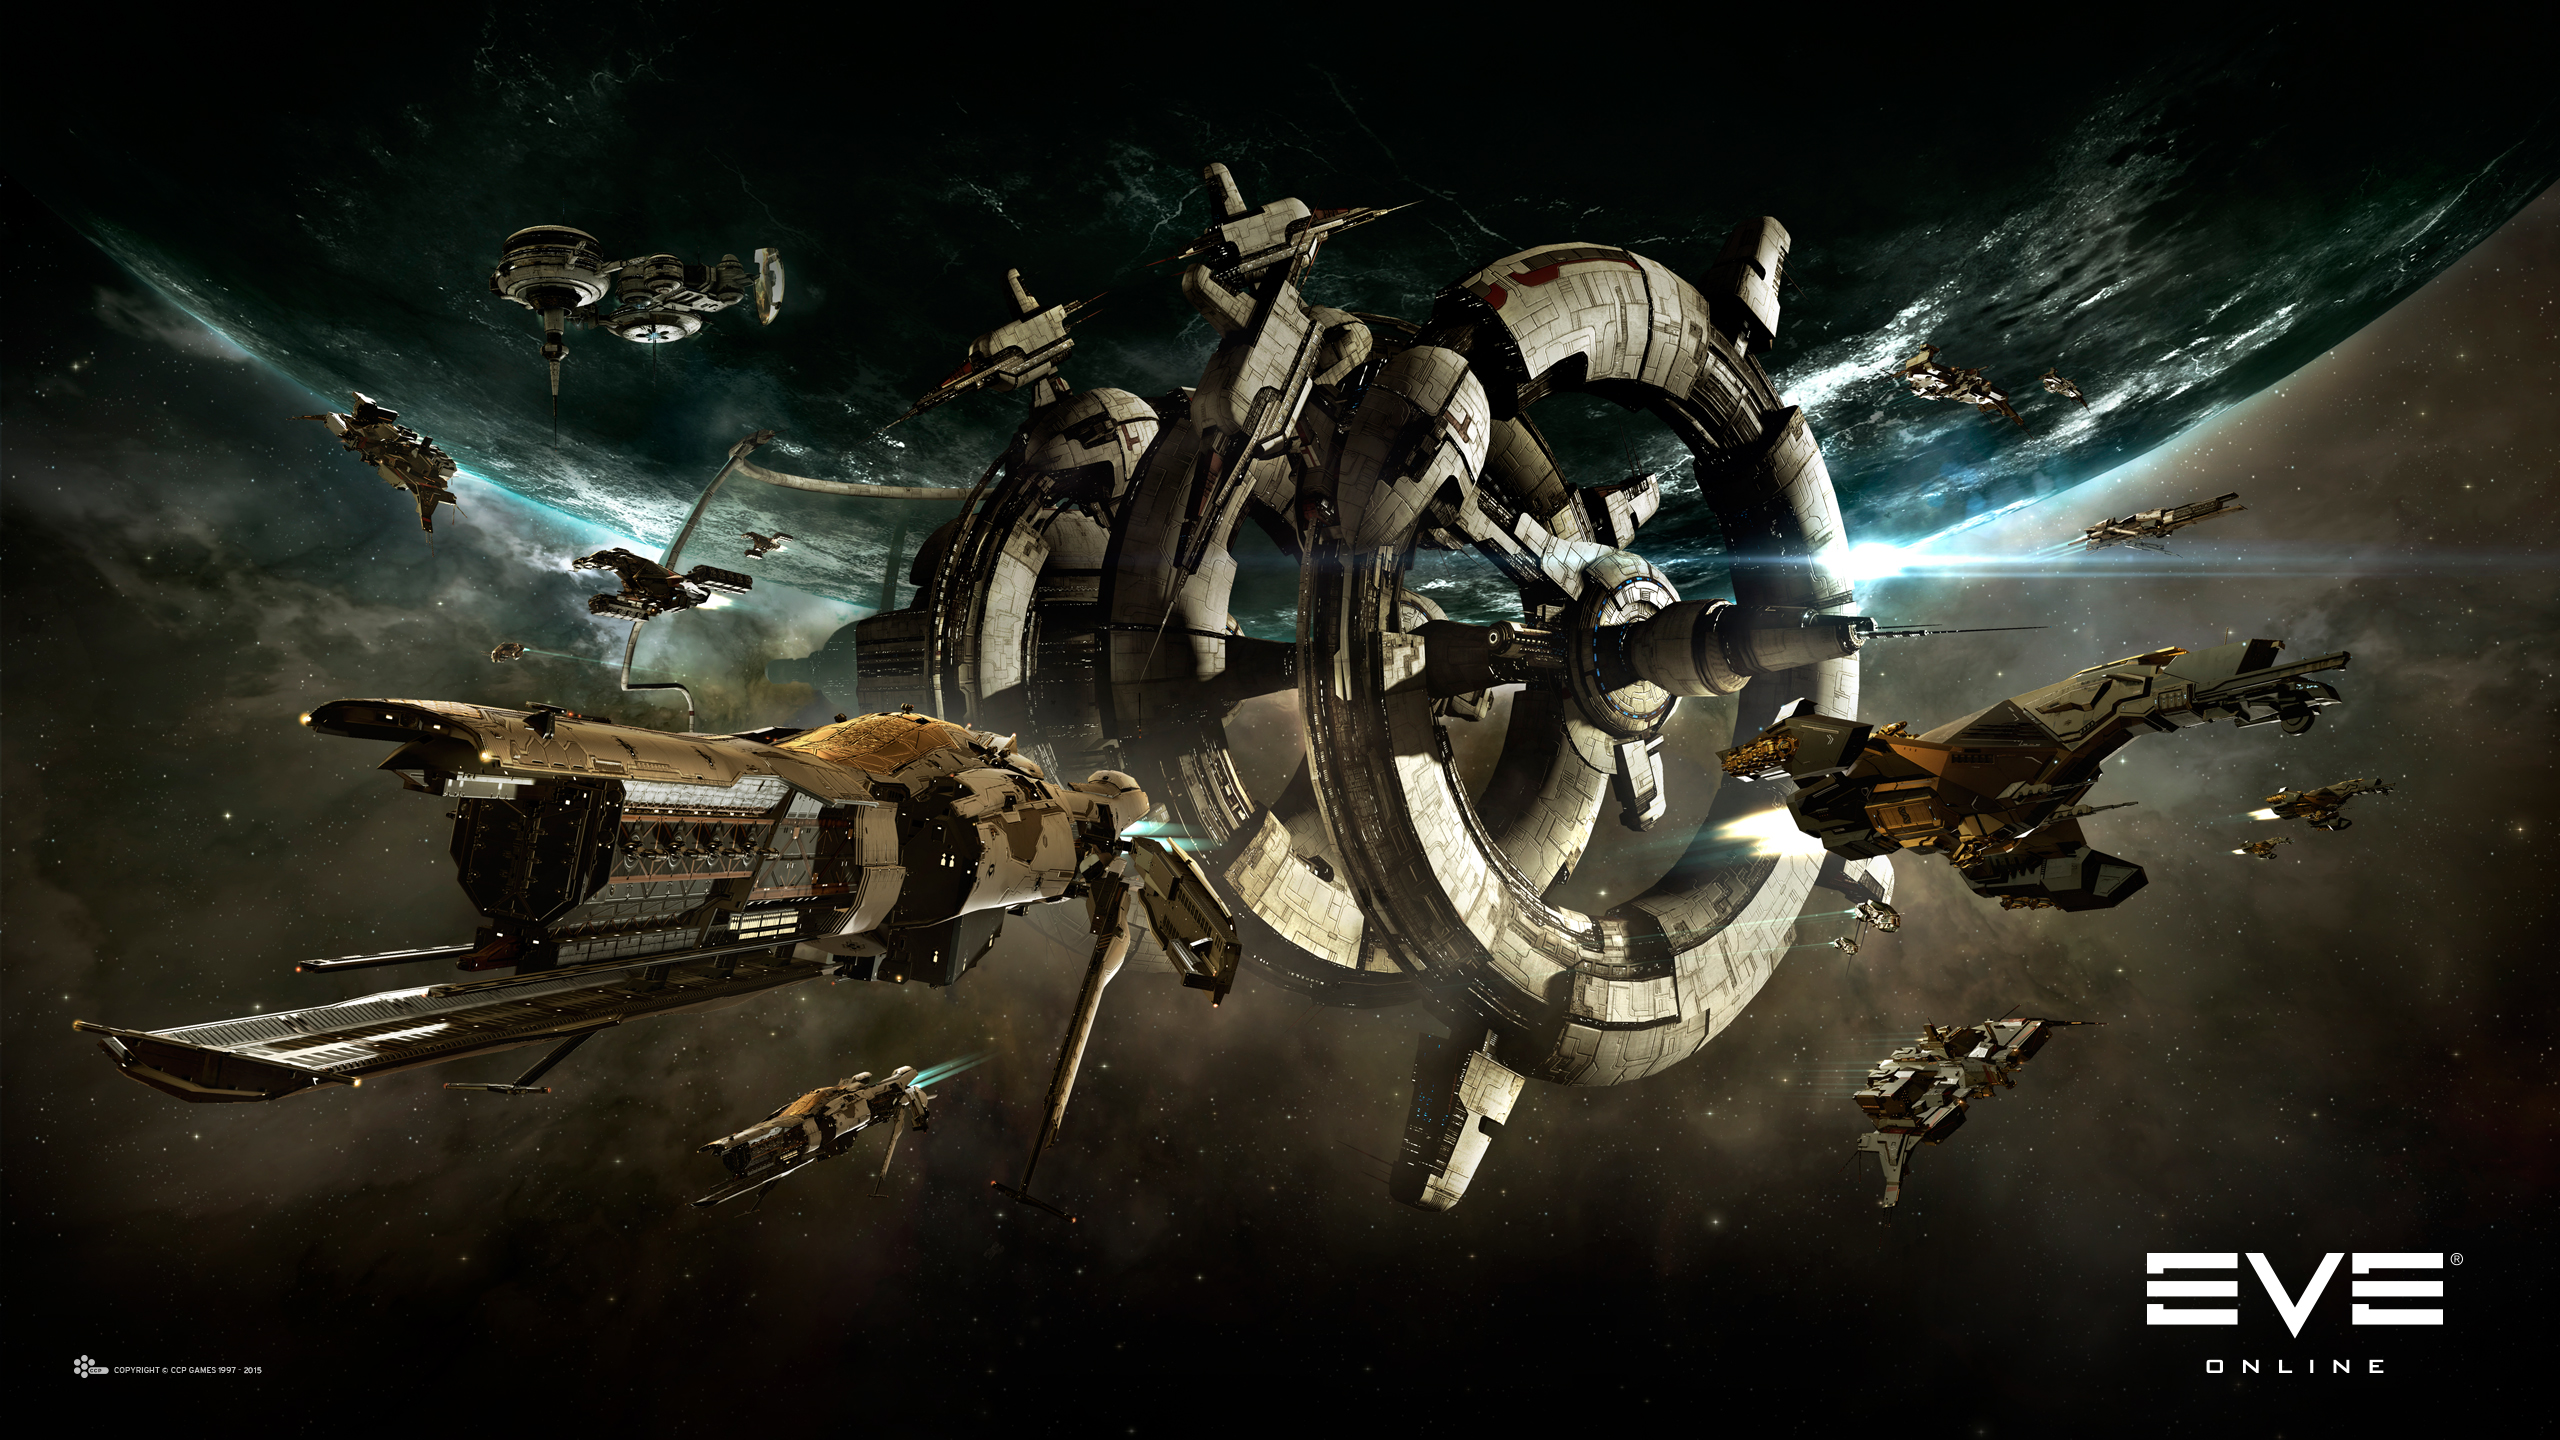 eve online pc